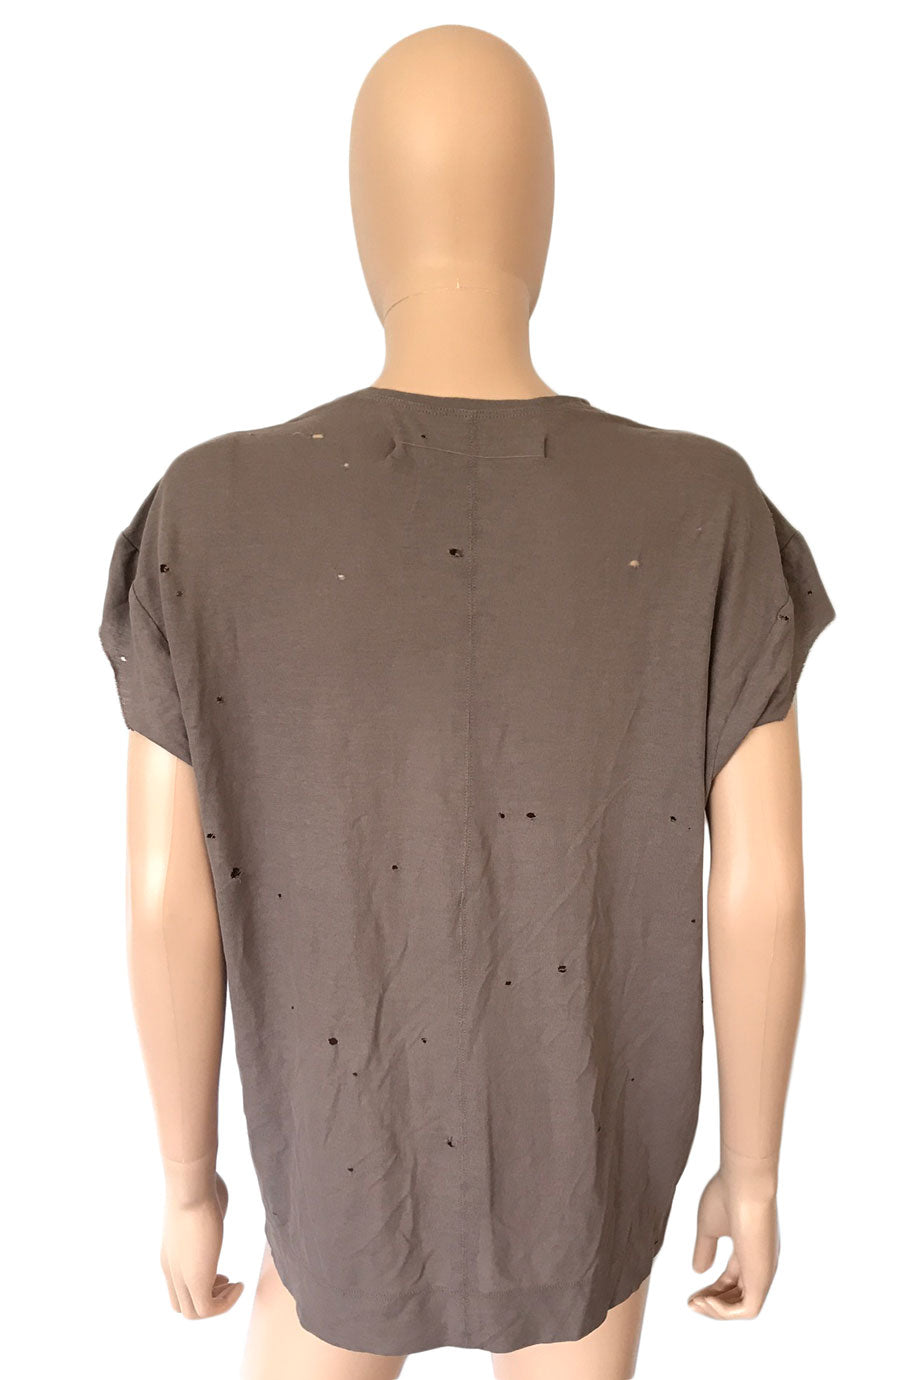 Raquel Allegra Plum Cotton Distressed Short Sleeve T-Shirt / Sz 0-Style Therapy